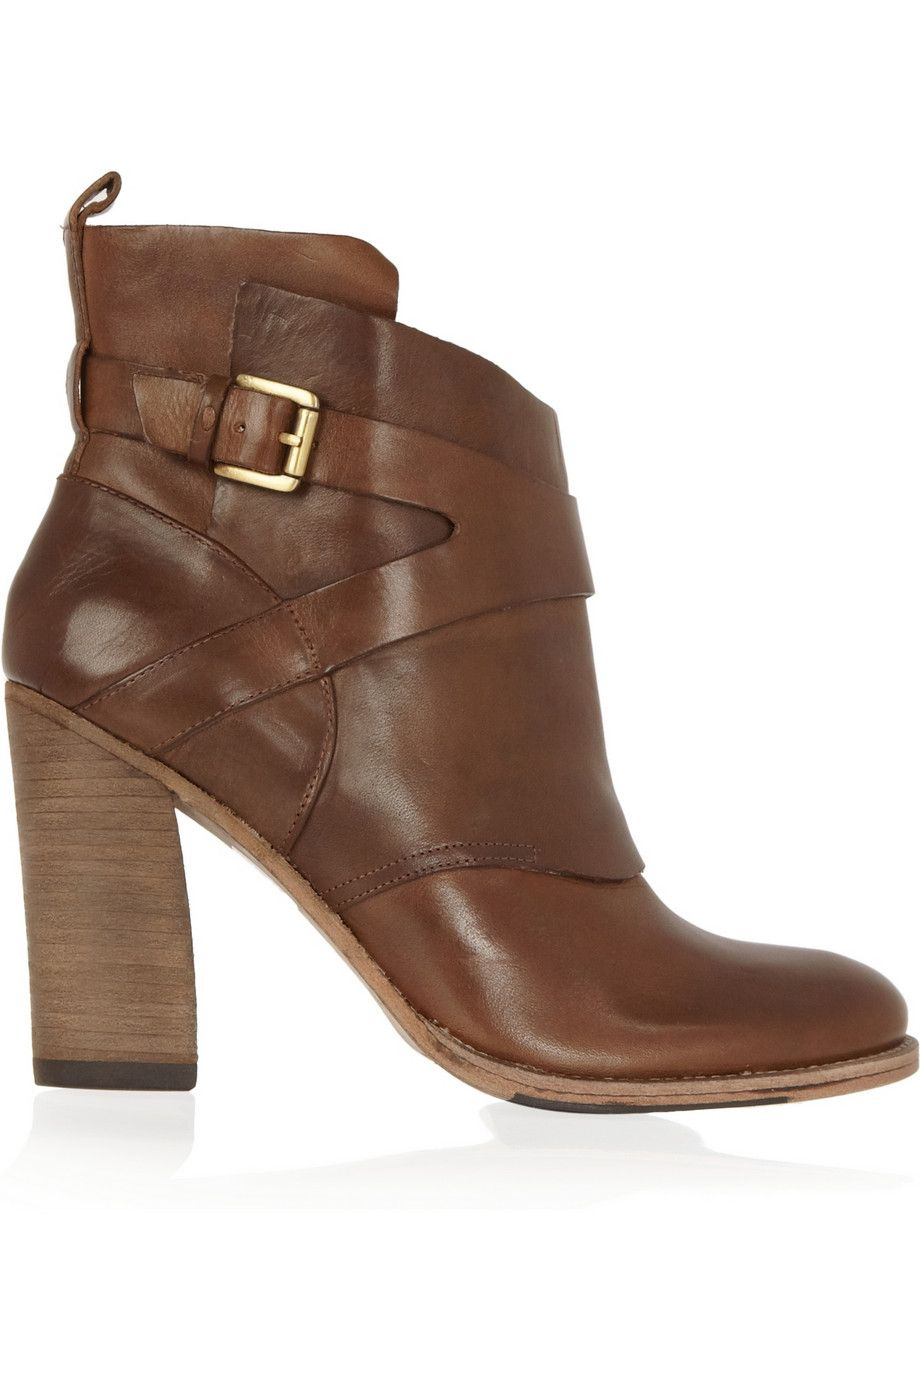 ebc38fc37f2 Leather ankle boots by Belle Sigerson Morrison